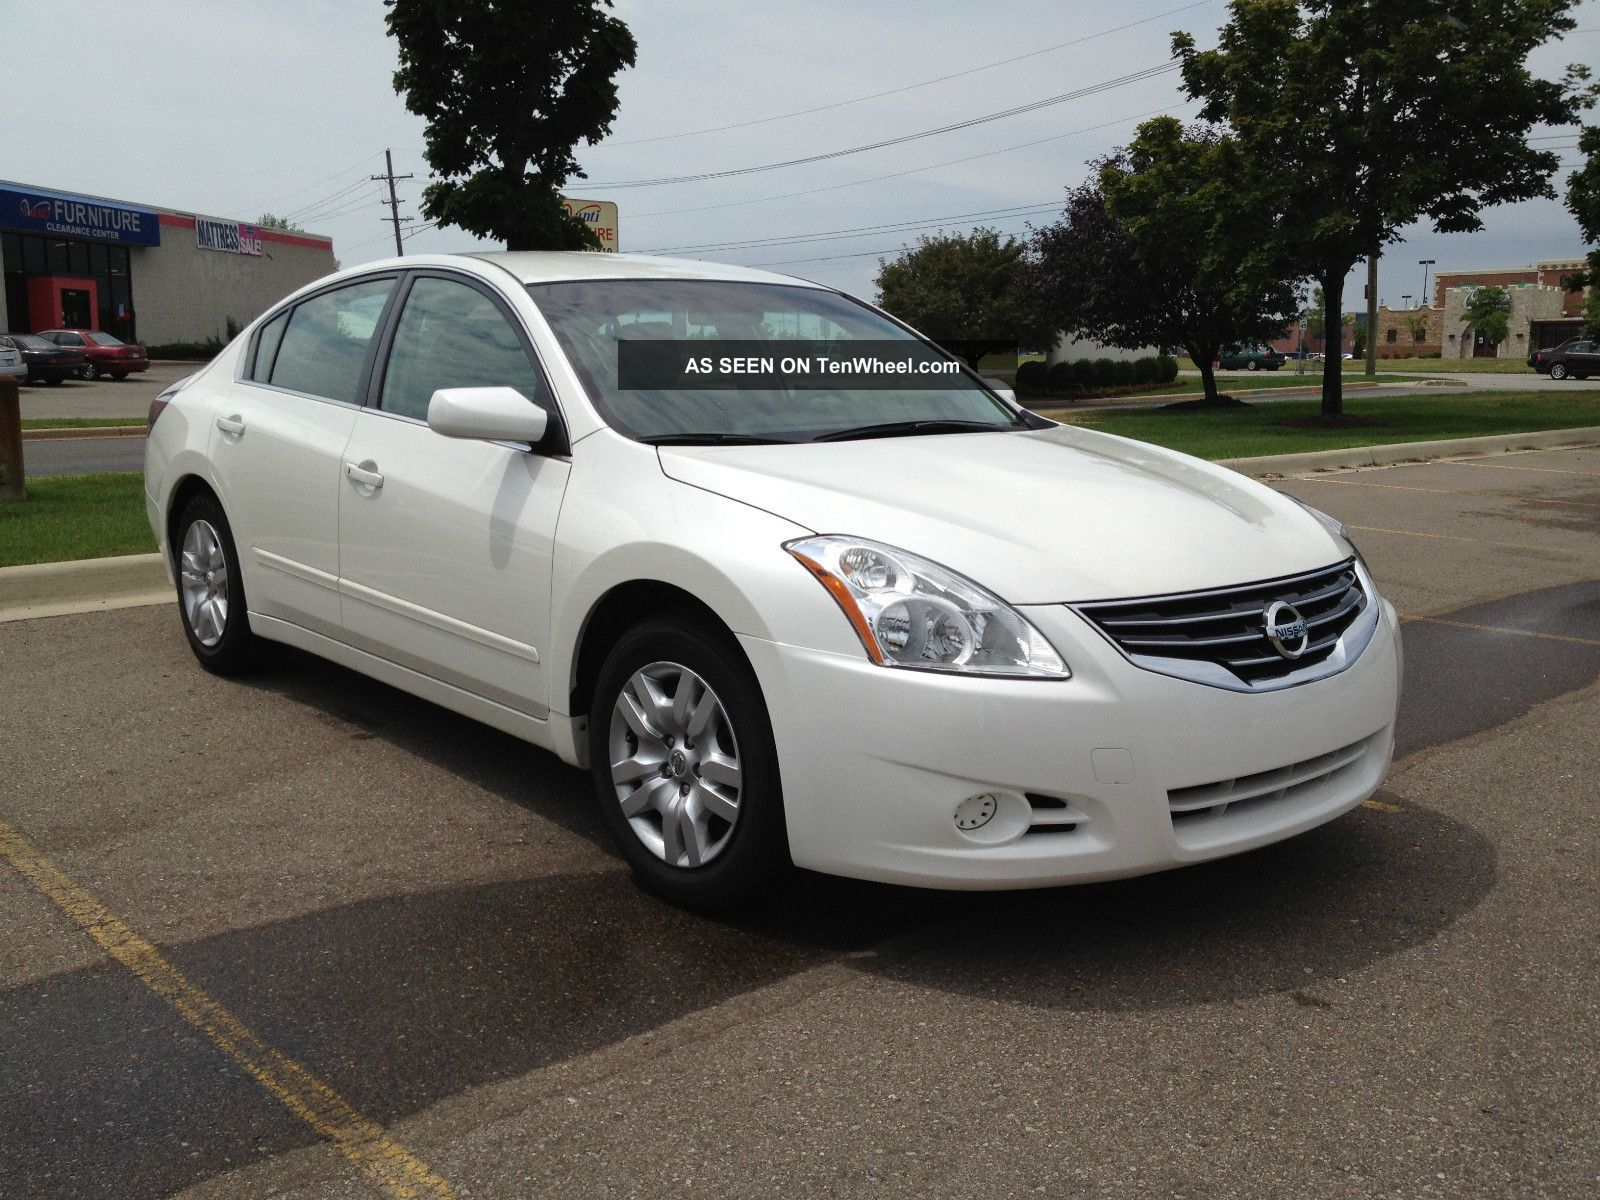 2013 nissan altima 25 s price specs features autos post. Black Bedroom Furniture Sets. Home Design Ideas